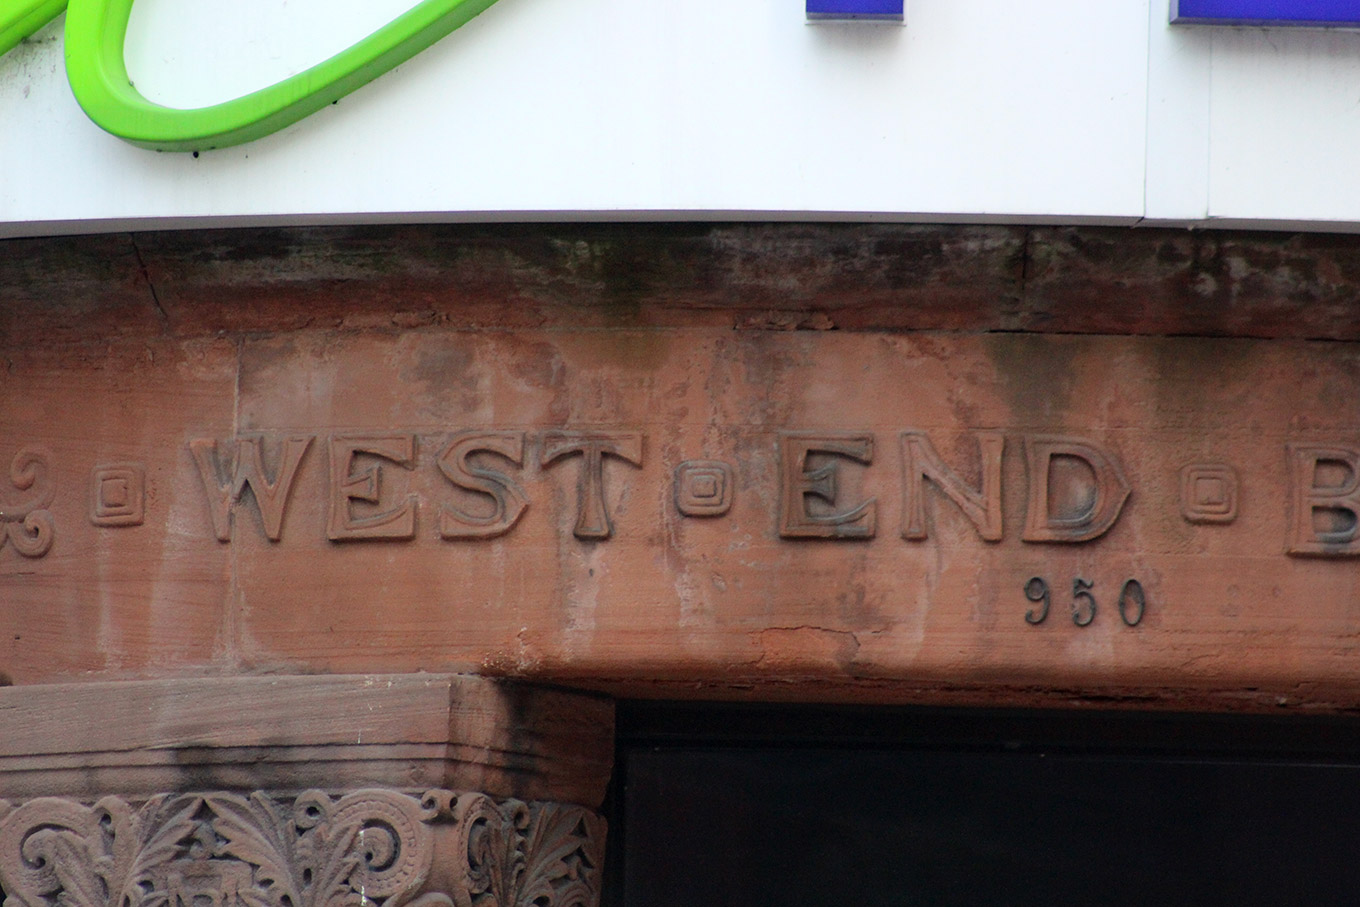 Detail of the original West End Branch lettering at the former Bank of Montreal (now Telus).